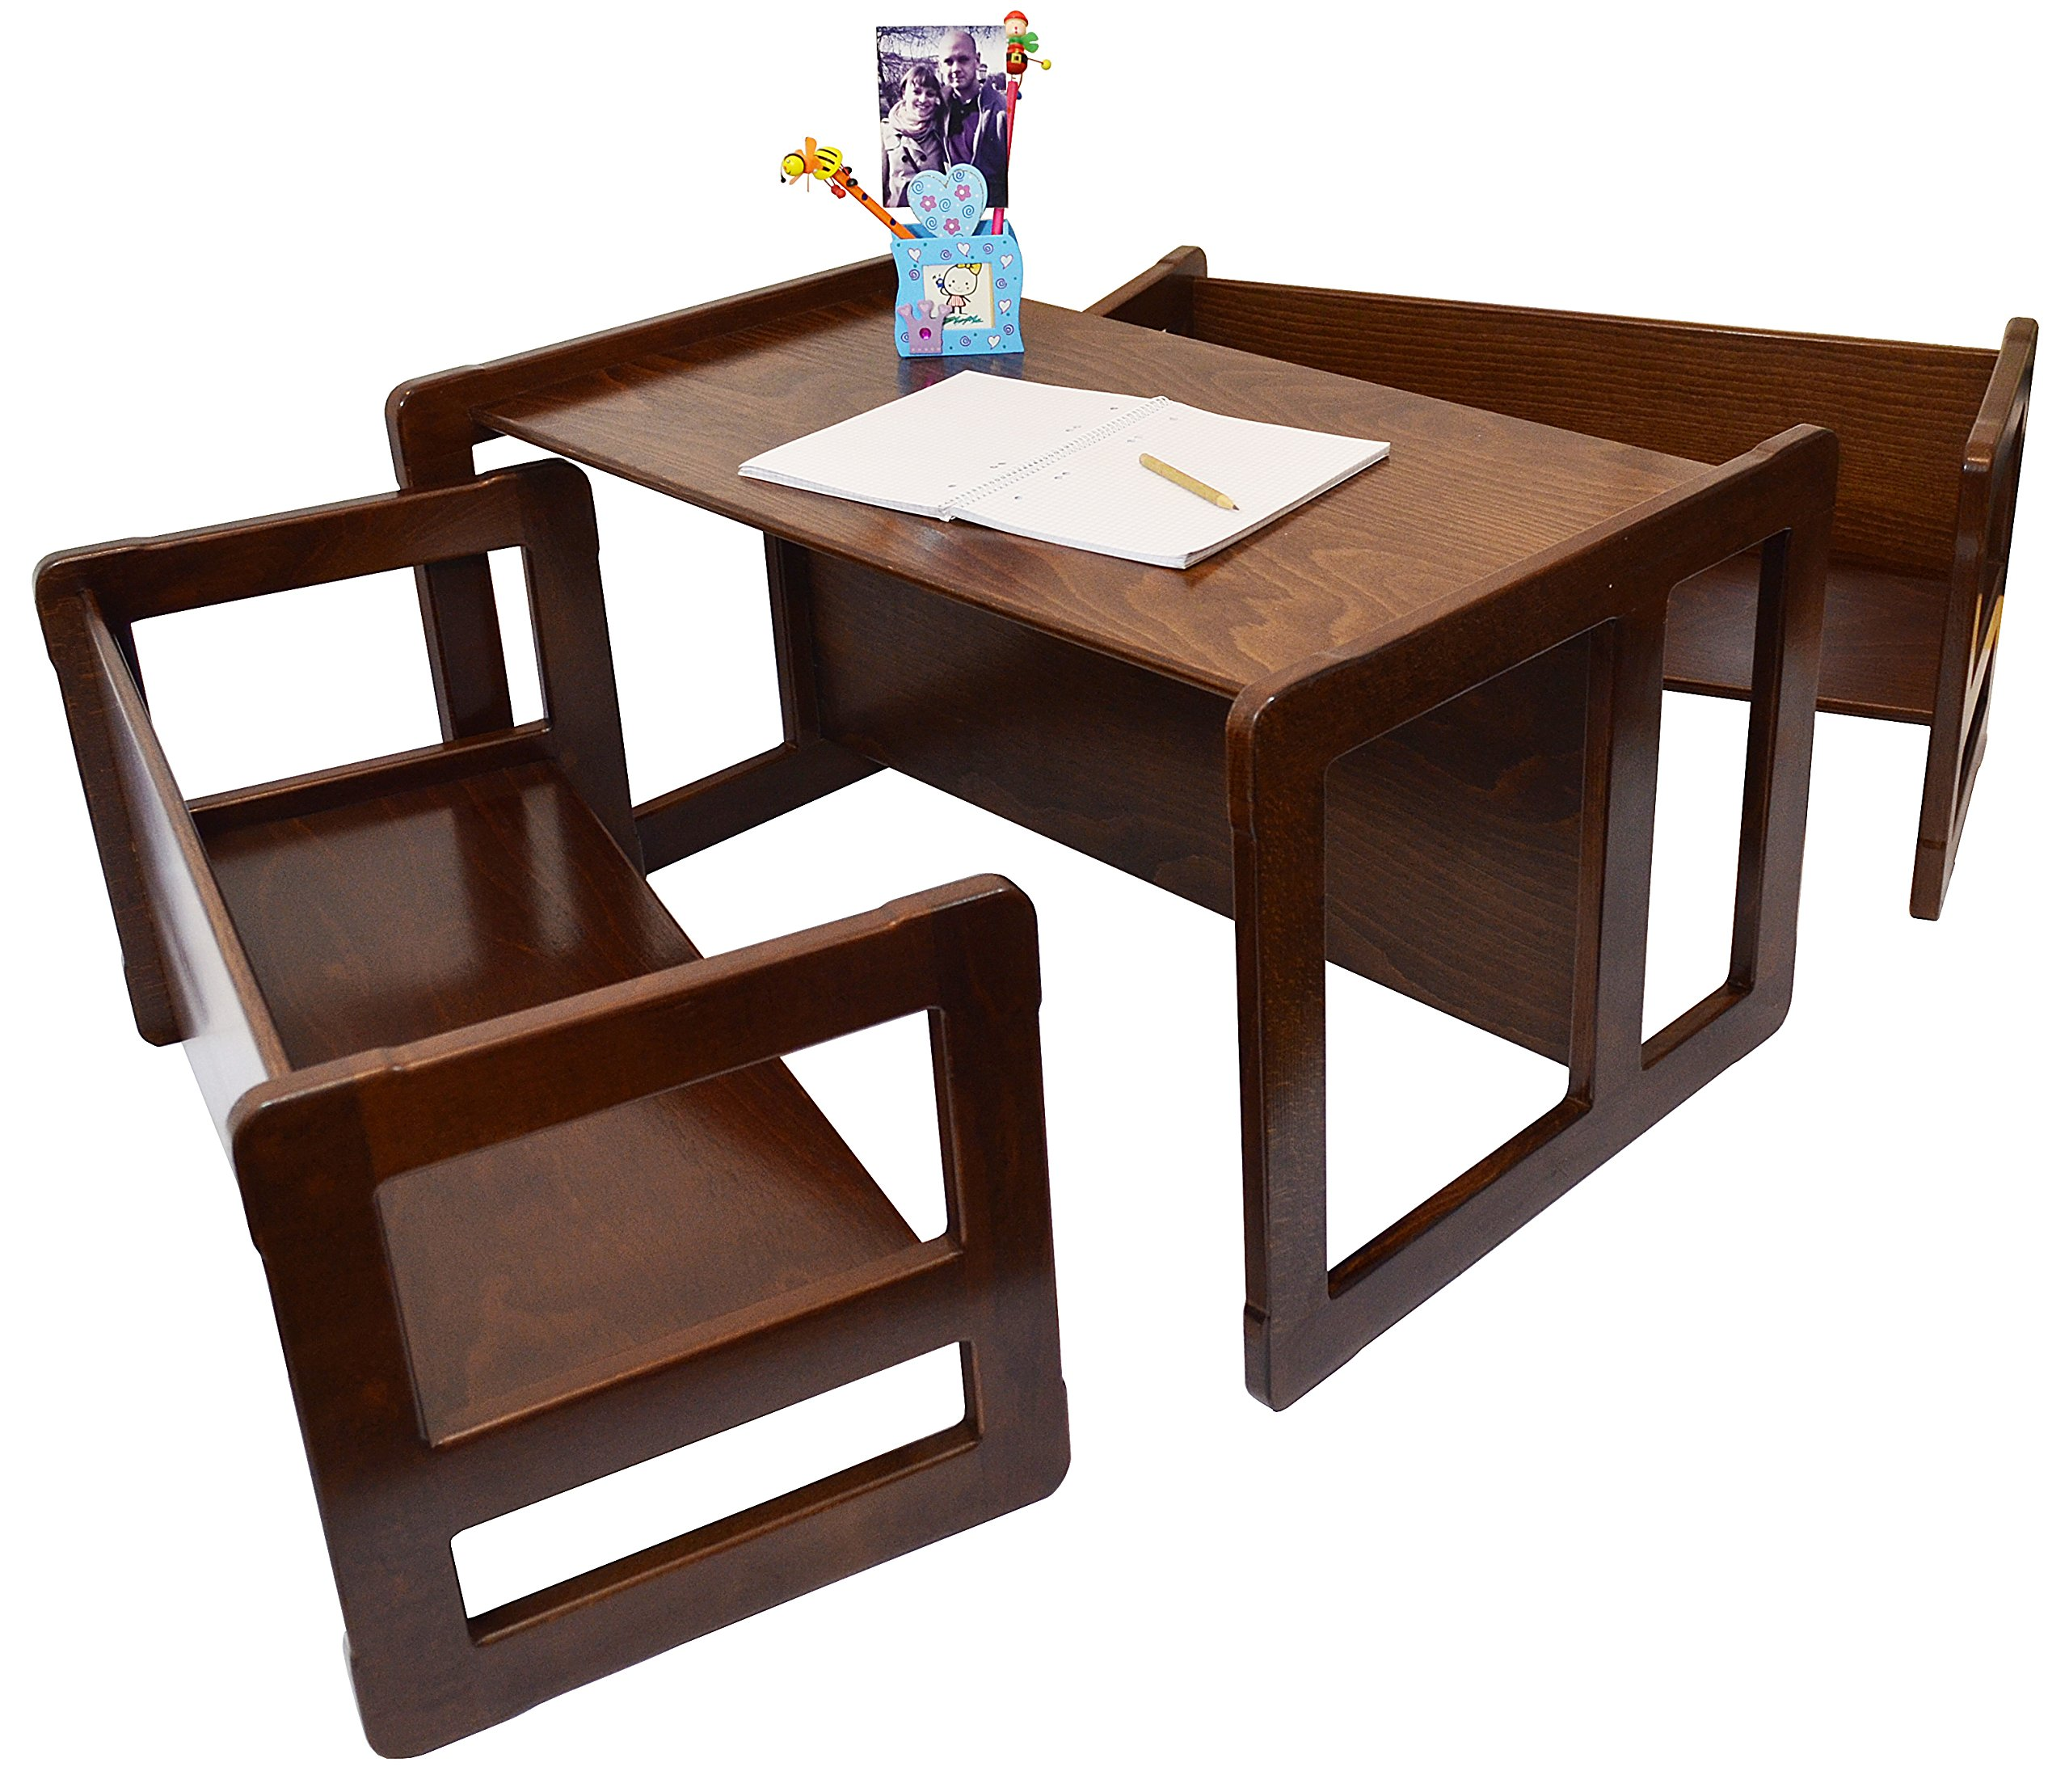 3 in 1 Childrens Multifunctional Furniture Set of 3, Two Small Benches or Tables and One Large Bench or Table Beech Wood, Dark Stained